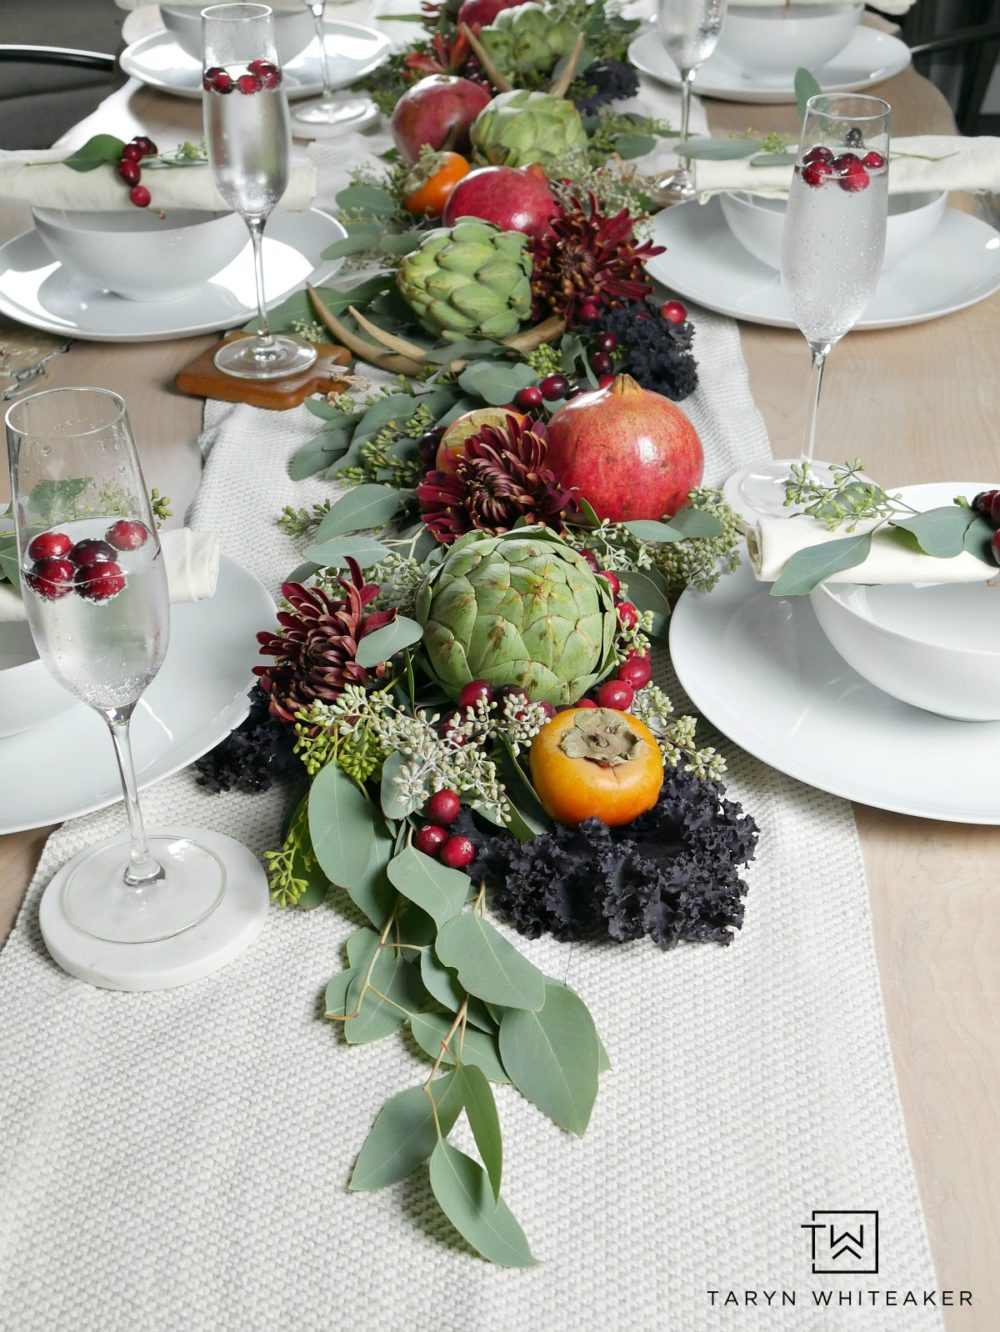 https://tarynwhiteaker.com/wp-content/uploads/2017/11/Cranberry-Tablescape-6.jpg